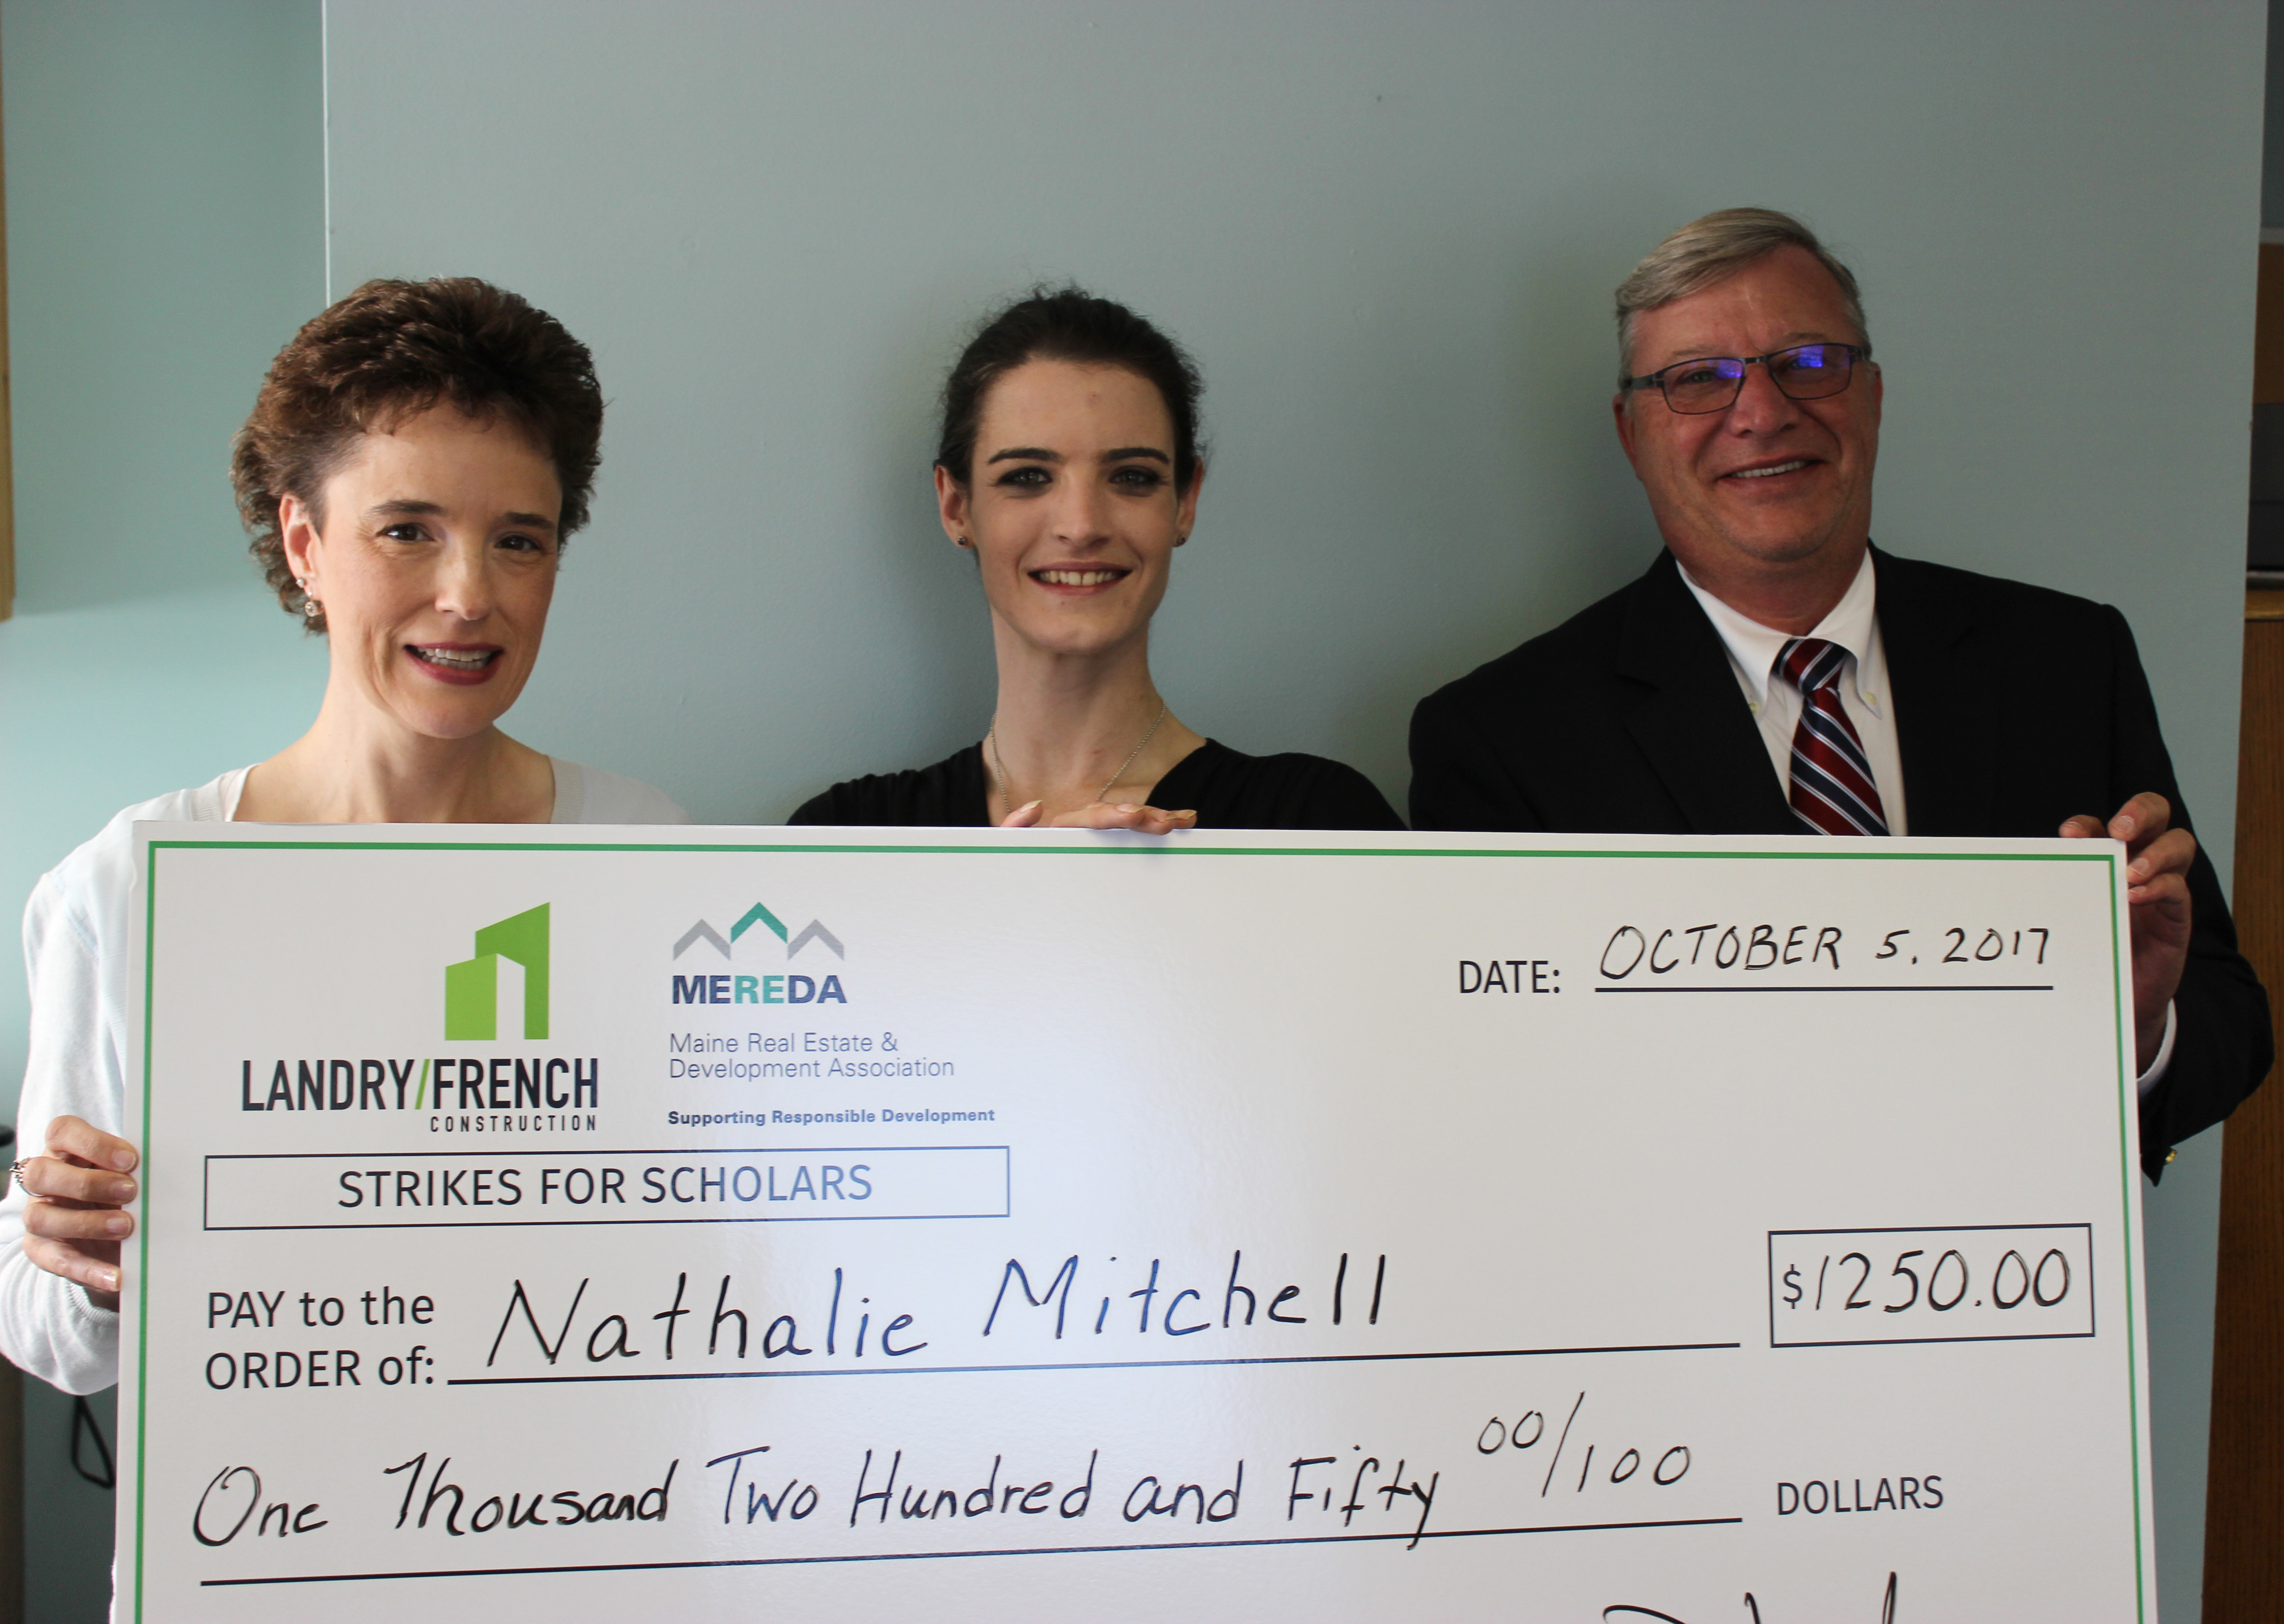 Shelly R. Clark from MEREDA and Denis Landry from Landry/French Construction present a scholarship check to SMCC Student Nathalie Mitchell.